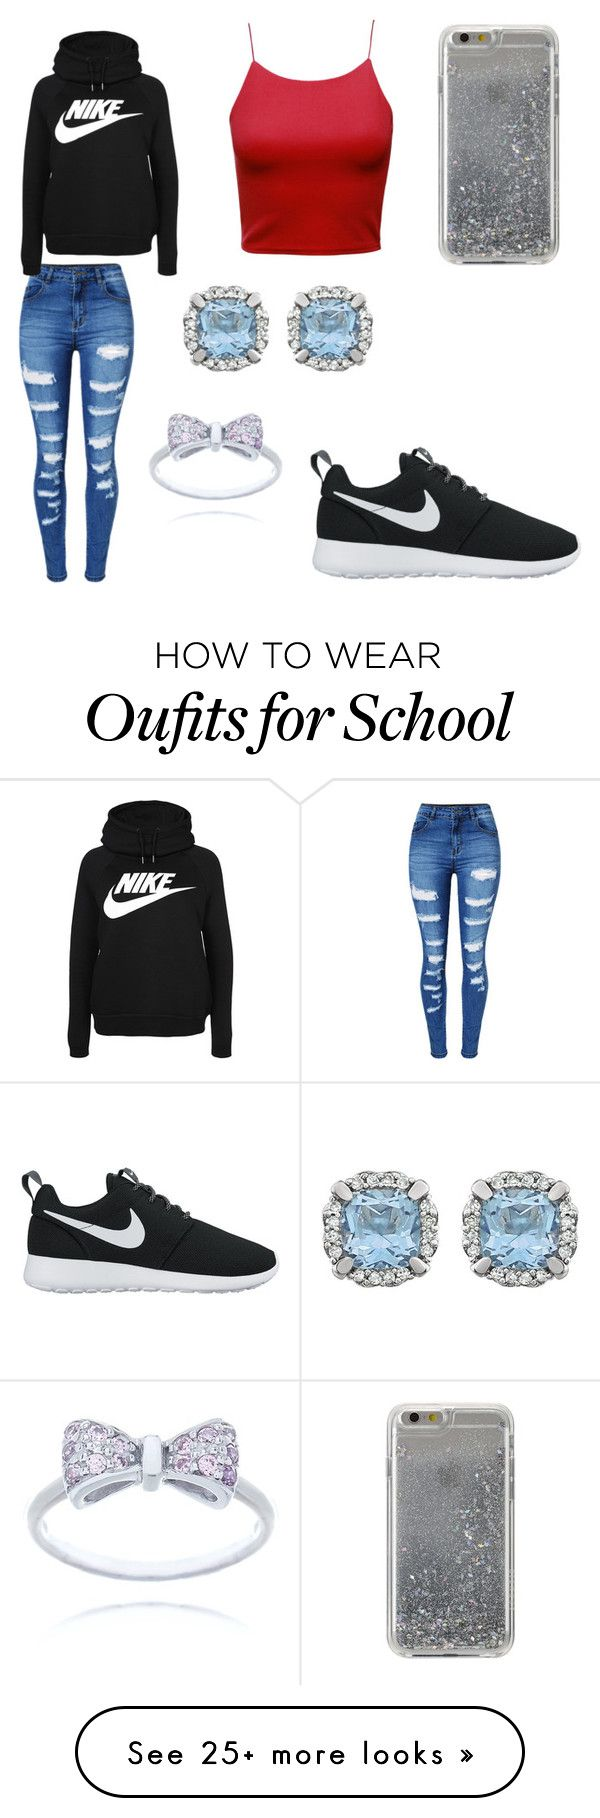 """WINTER AND HIGH SCHOOL STYLE"" by mgarcia-iii on Polyvore featuring WithChic, Agent 18 and NIKE"